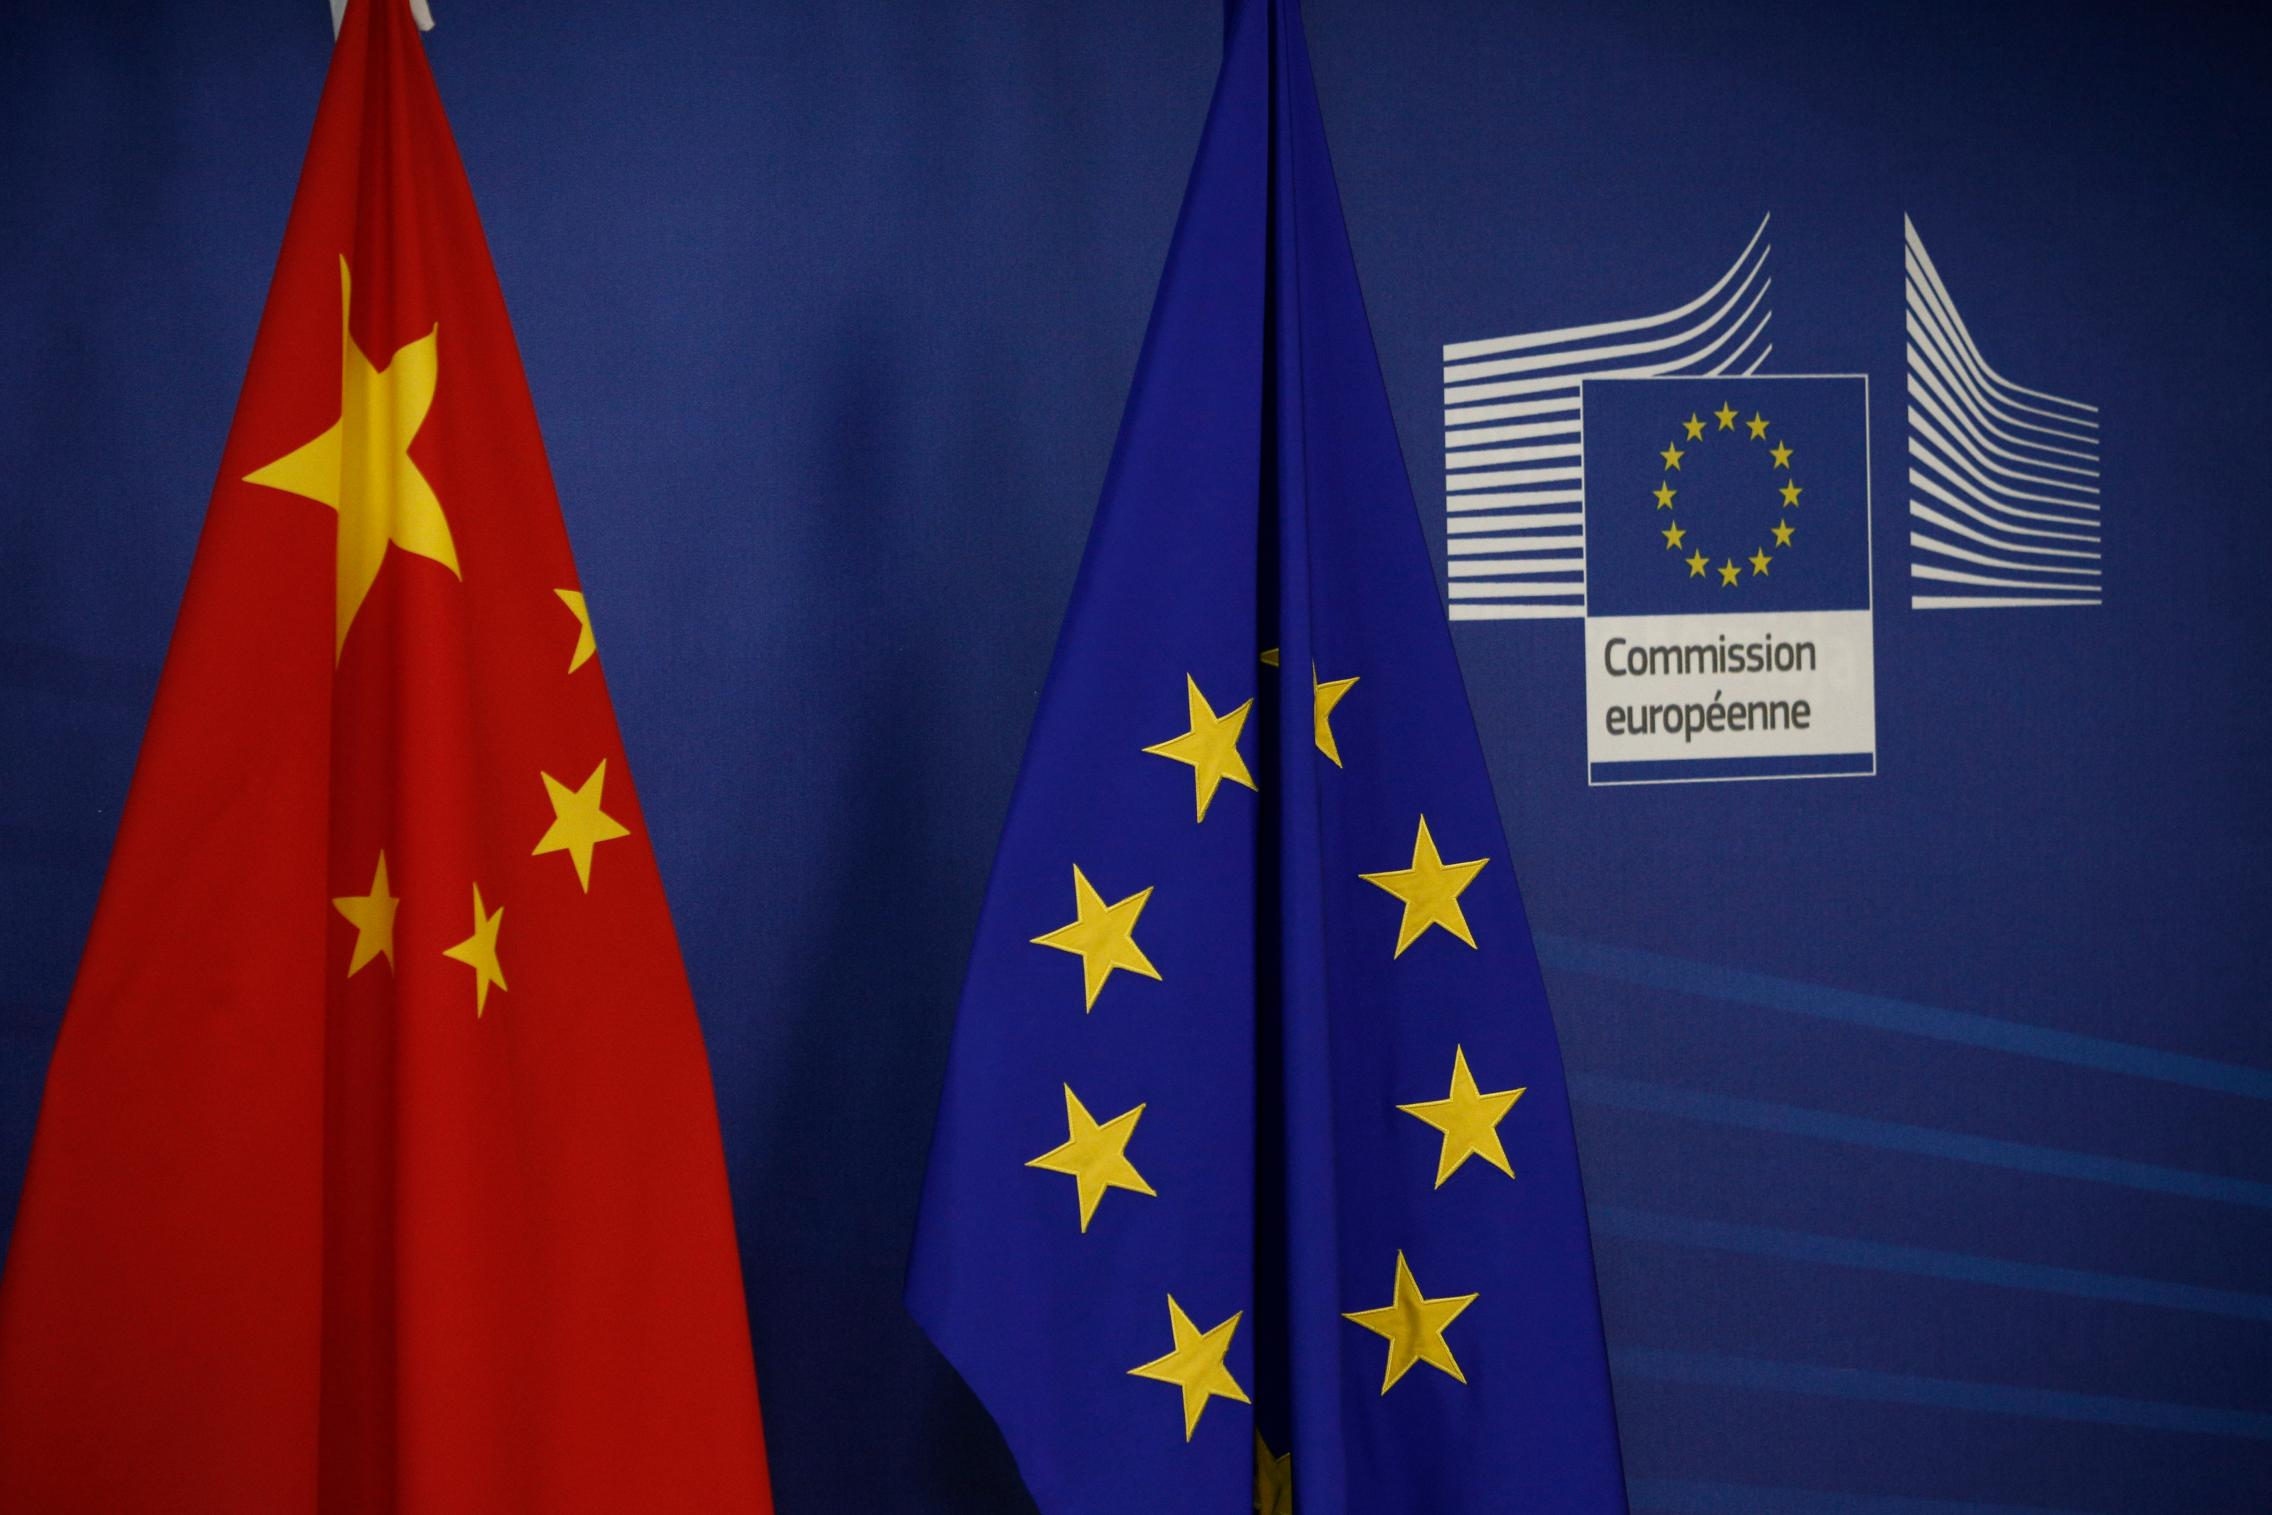 EU _China Flag